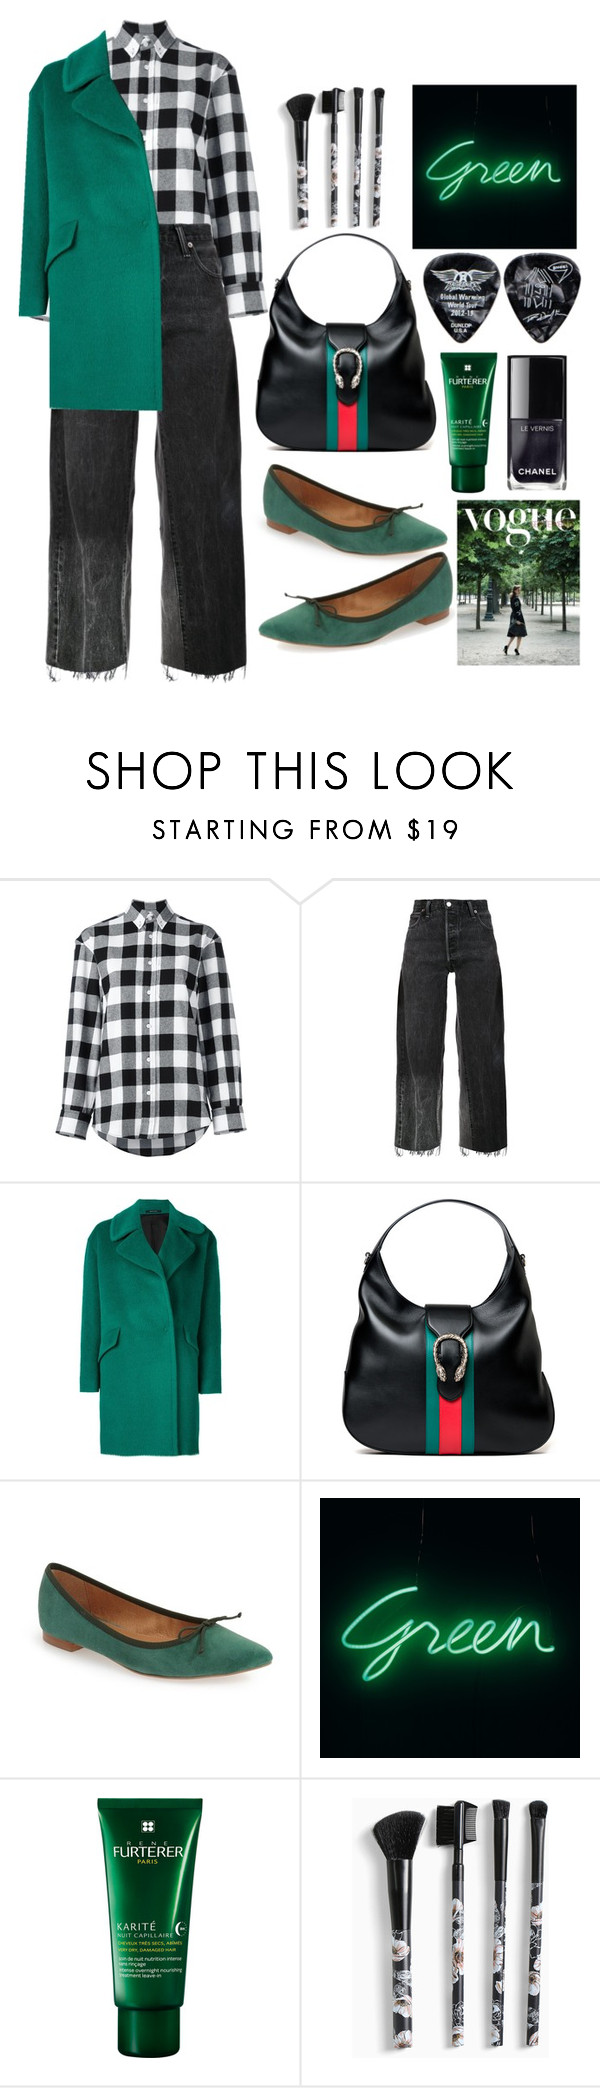 """Simply Green"" by loves-elephants ❤ liked on Polyvore featuring Golden Goose, RE/DONE, Tagliatore, Gucci, Corso Como, Rene Furterer and Torrid"